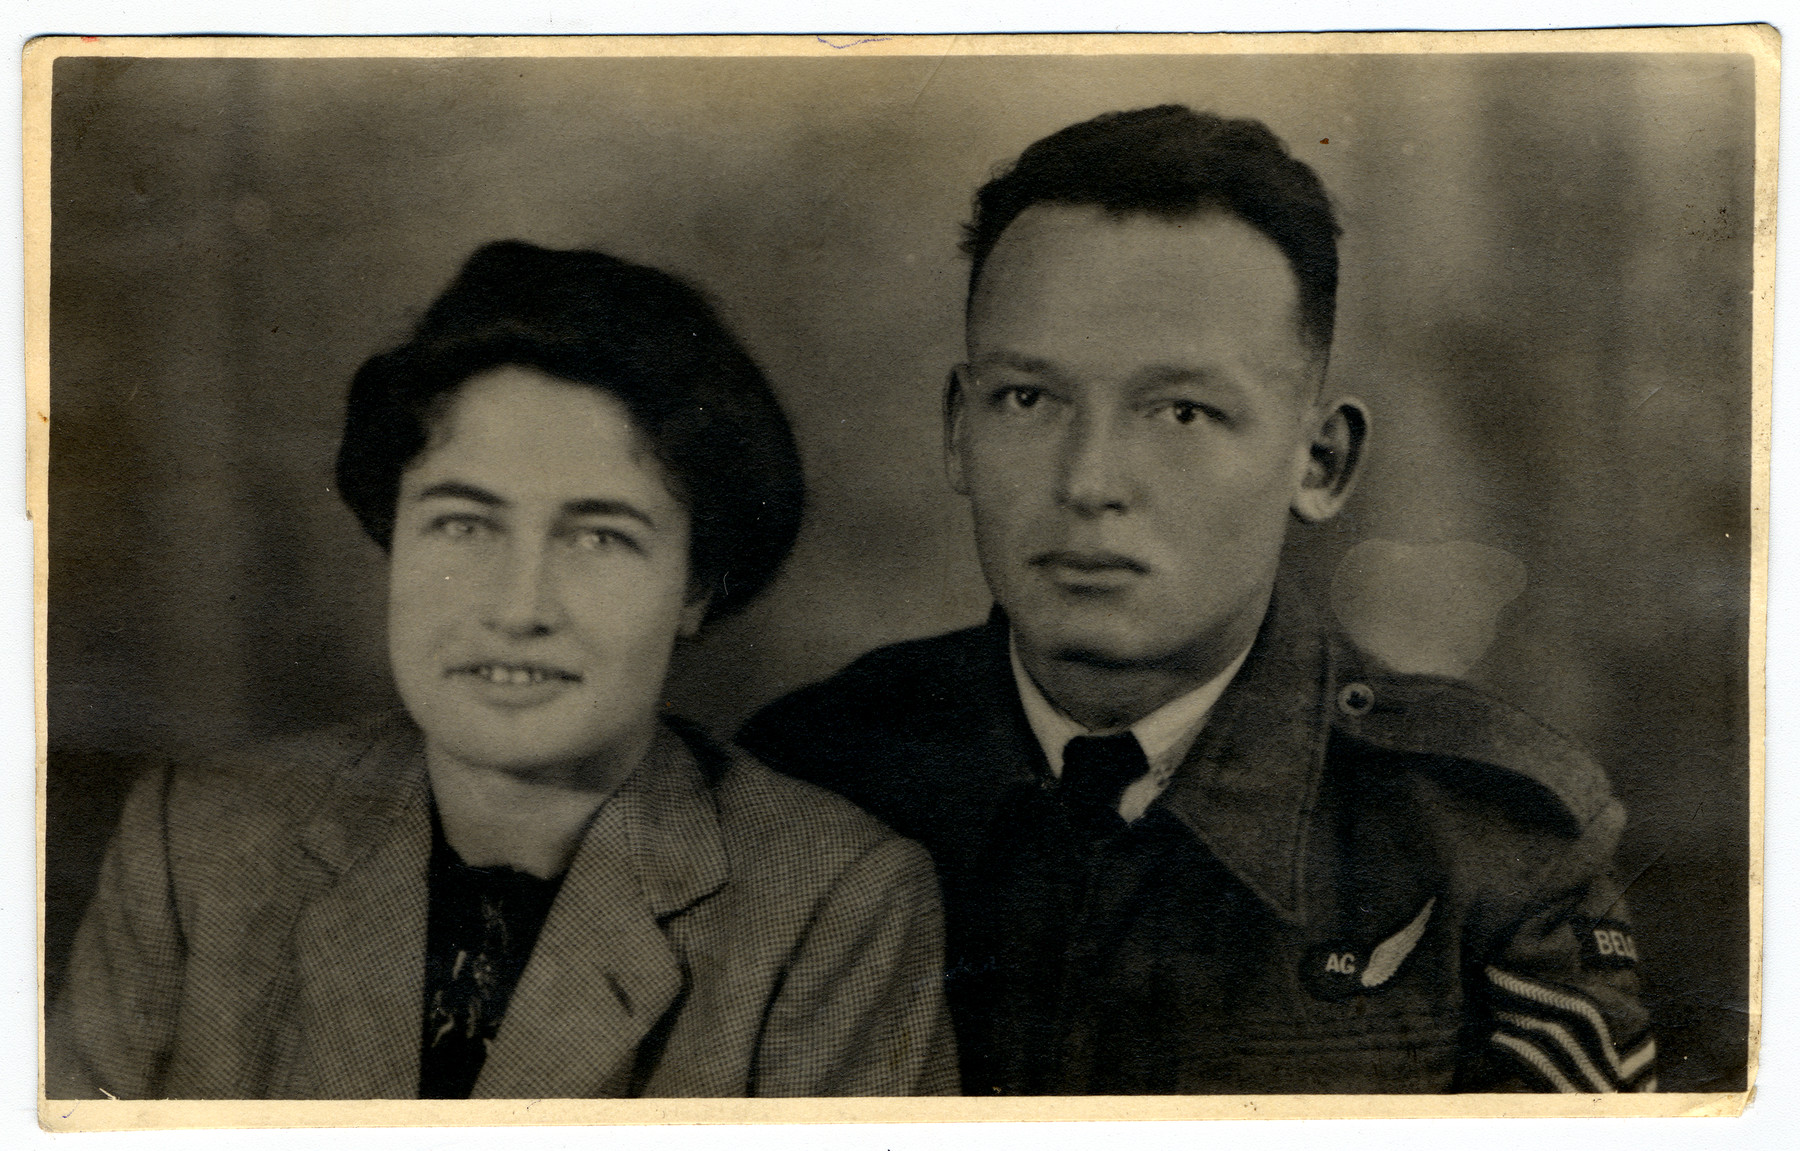 A portrait of Elka and Alexander Frank.   She had been the director of the Home General Bernheim in Belgium. He had been the director of the colony at Seyre, France. The photo was taken in England (1944), after the Franks had fled via Spain and Alex had enlisted in the RAF.